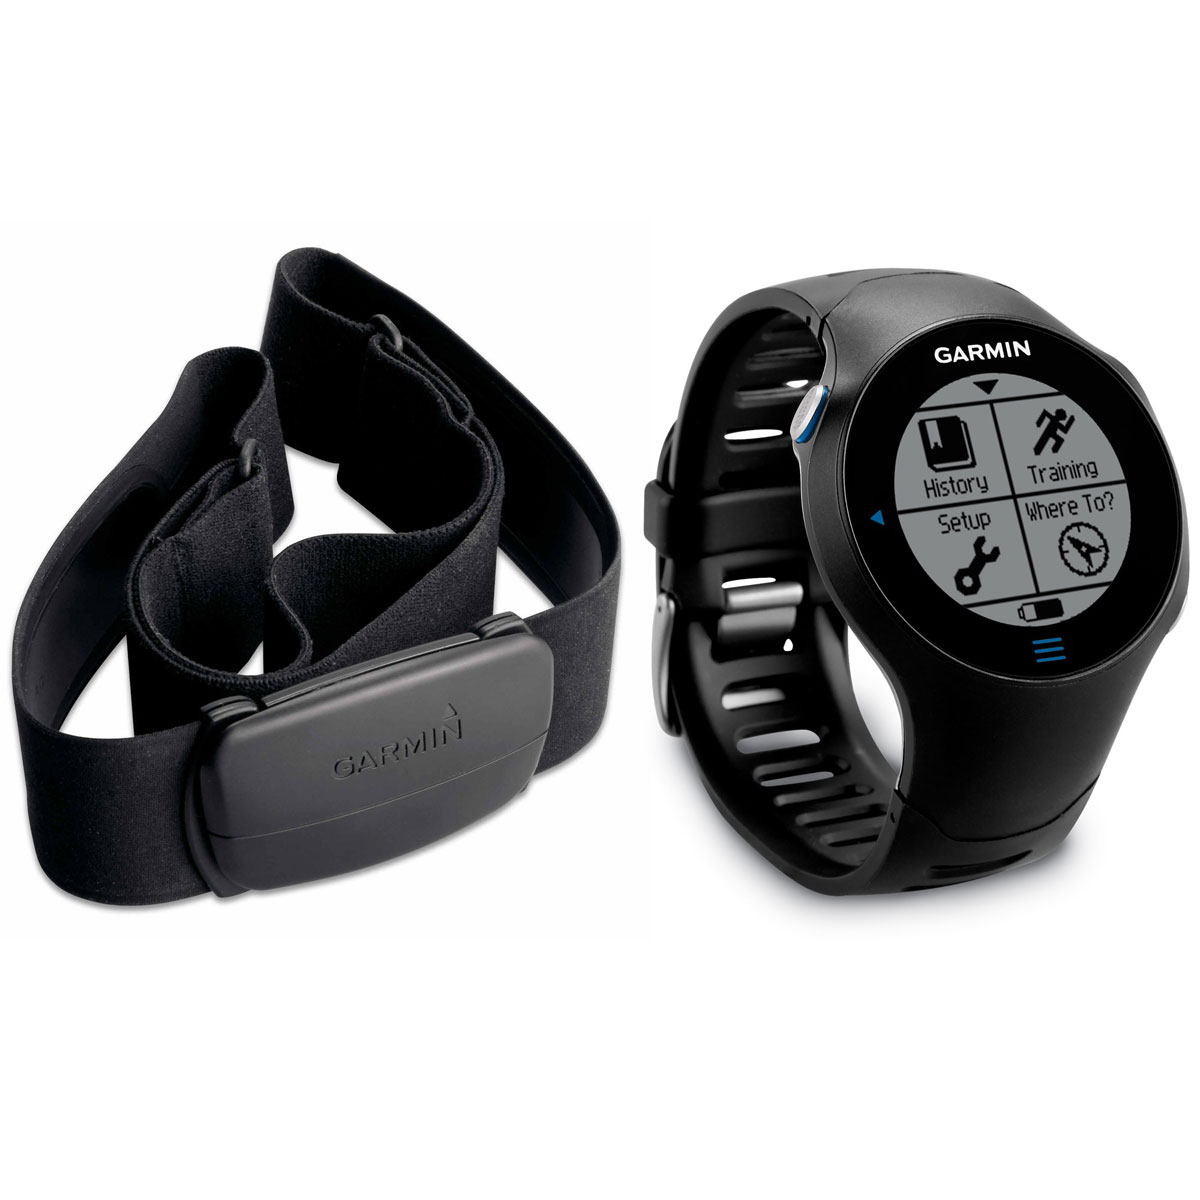 garmin forerunner 610 hrm montre running garmin sur ldlc. Black Bedroom Furniture Sets. Home Design Ideas